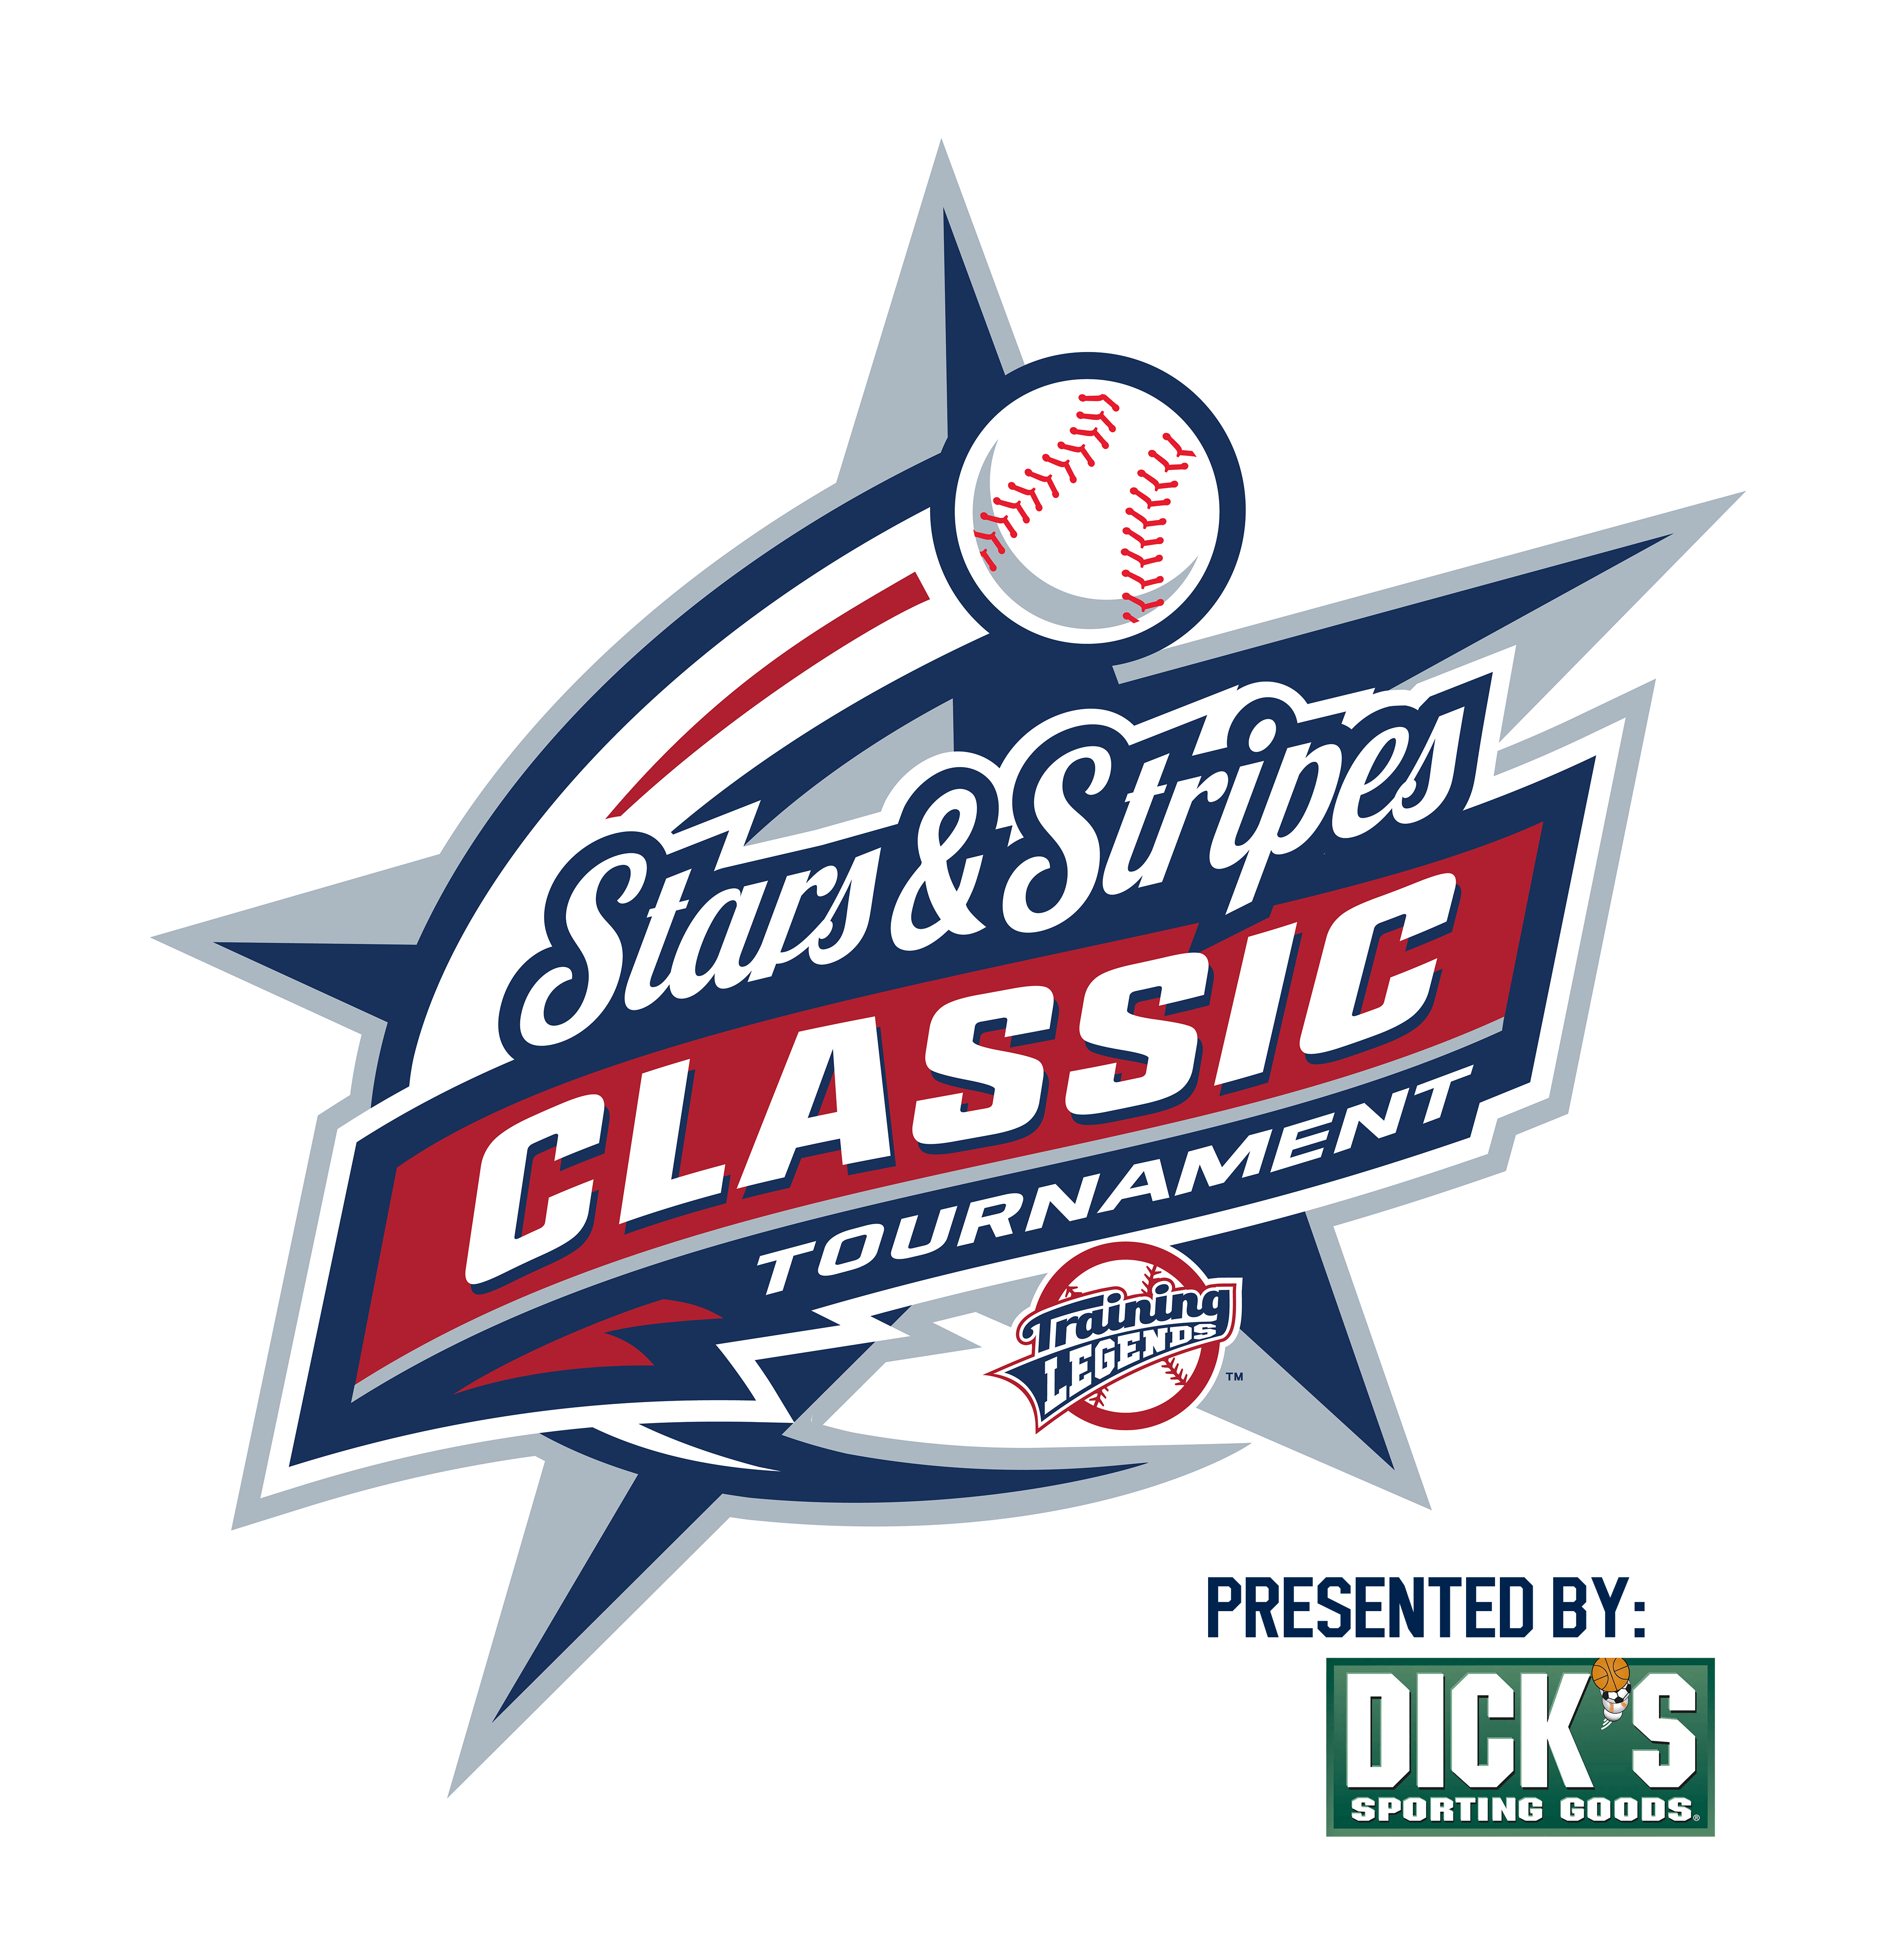 Stars and Stripes Classic (Travel): Presented by Dick's Sporting Goods | Rings Event